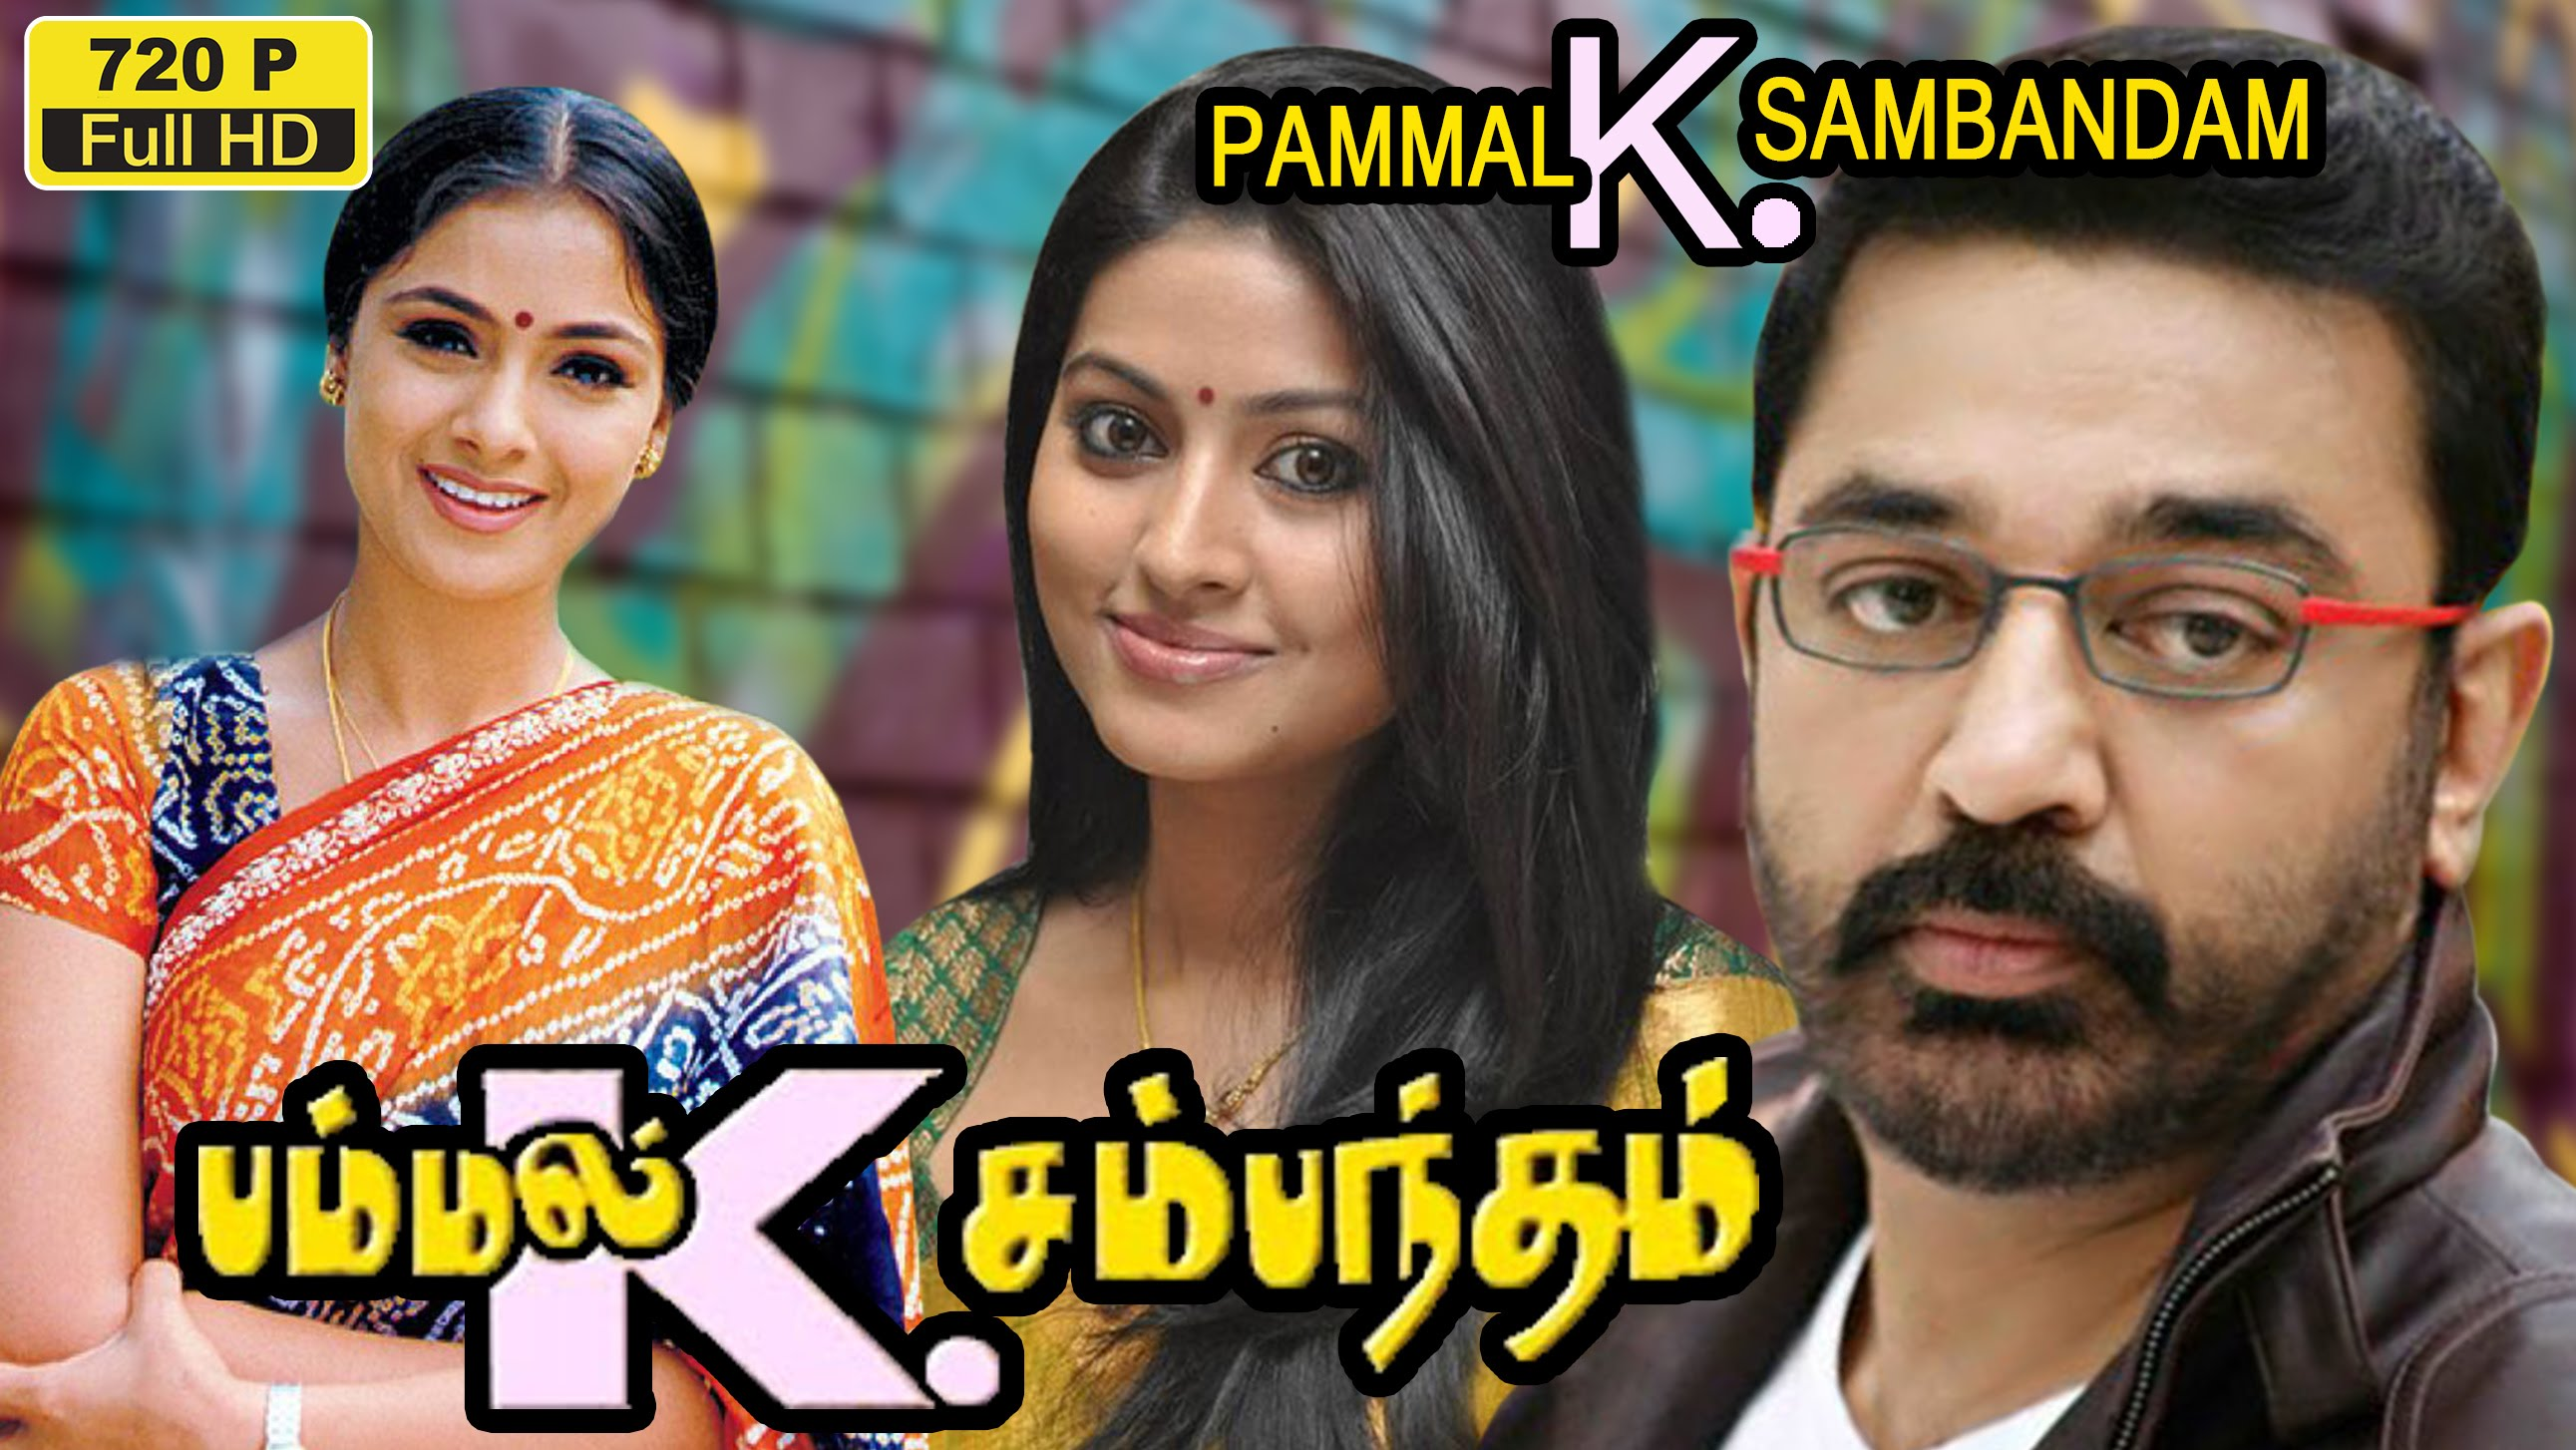 pammal k sambandam full movie | Kamal Haasan | Simran |பம்மல் கே. சம்பந்தம் | new upload 2015